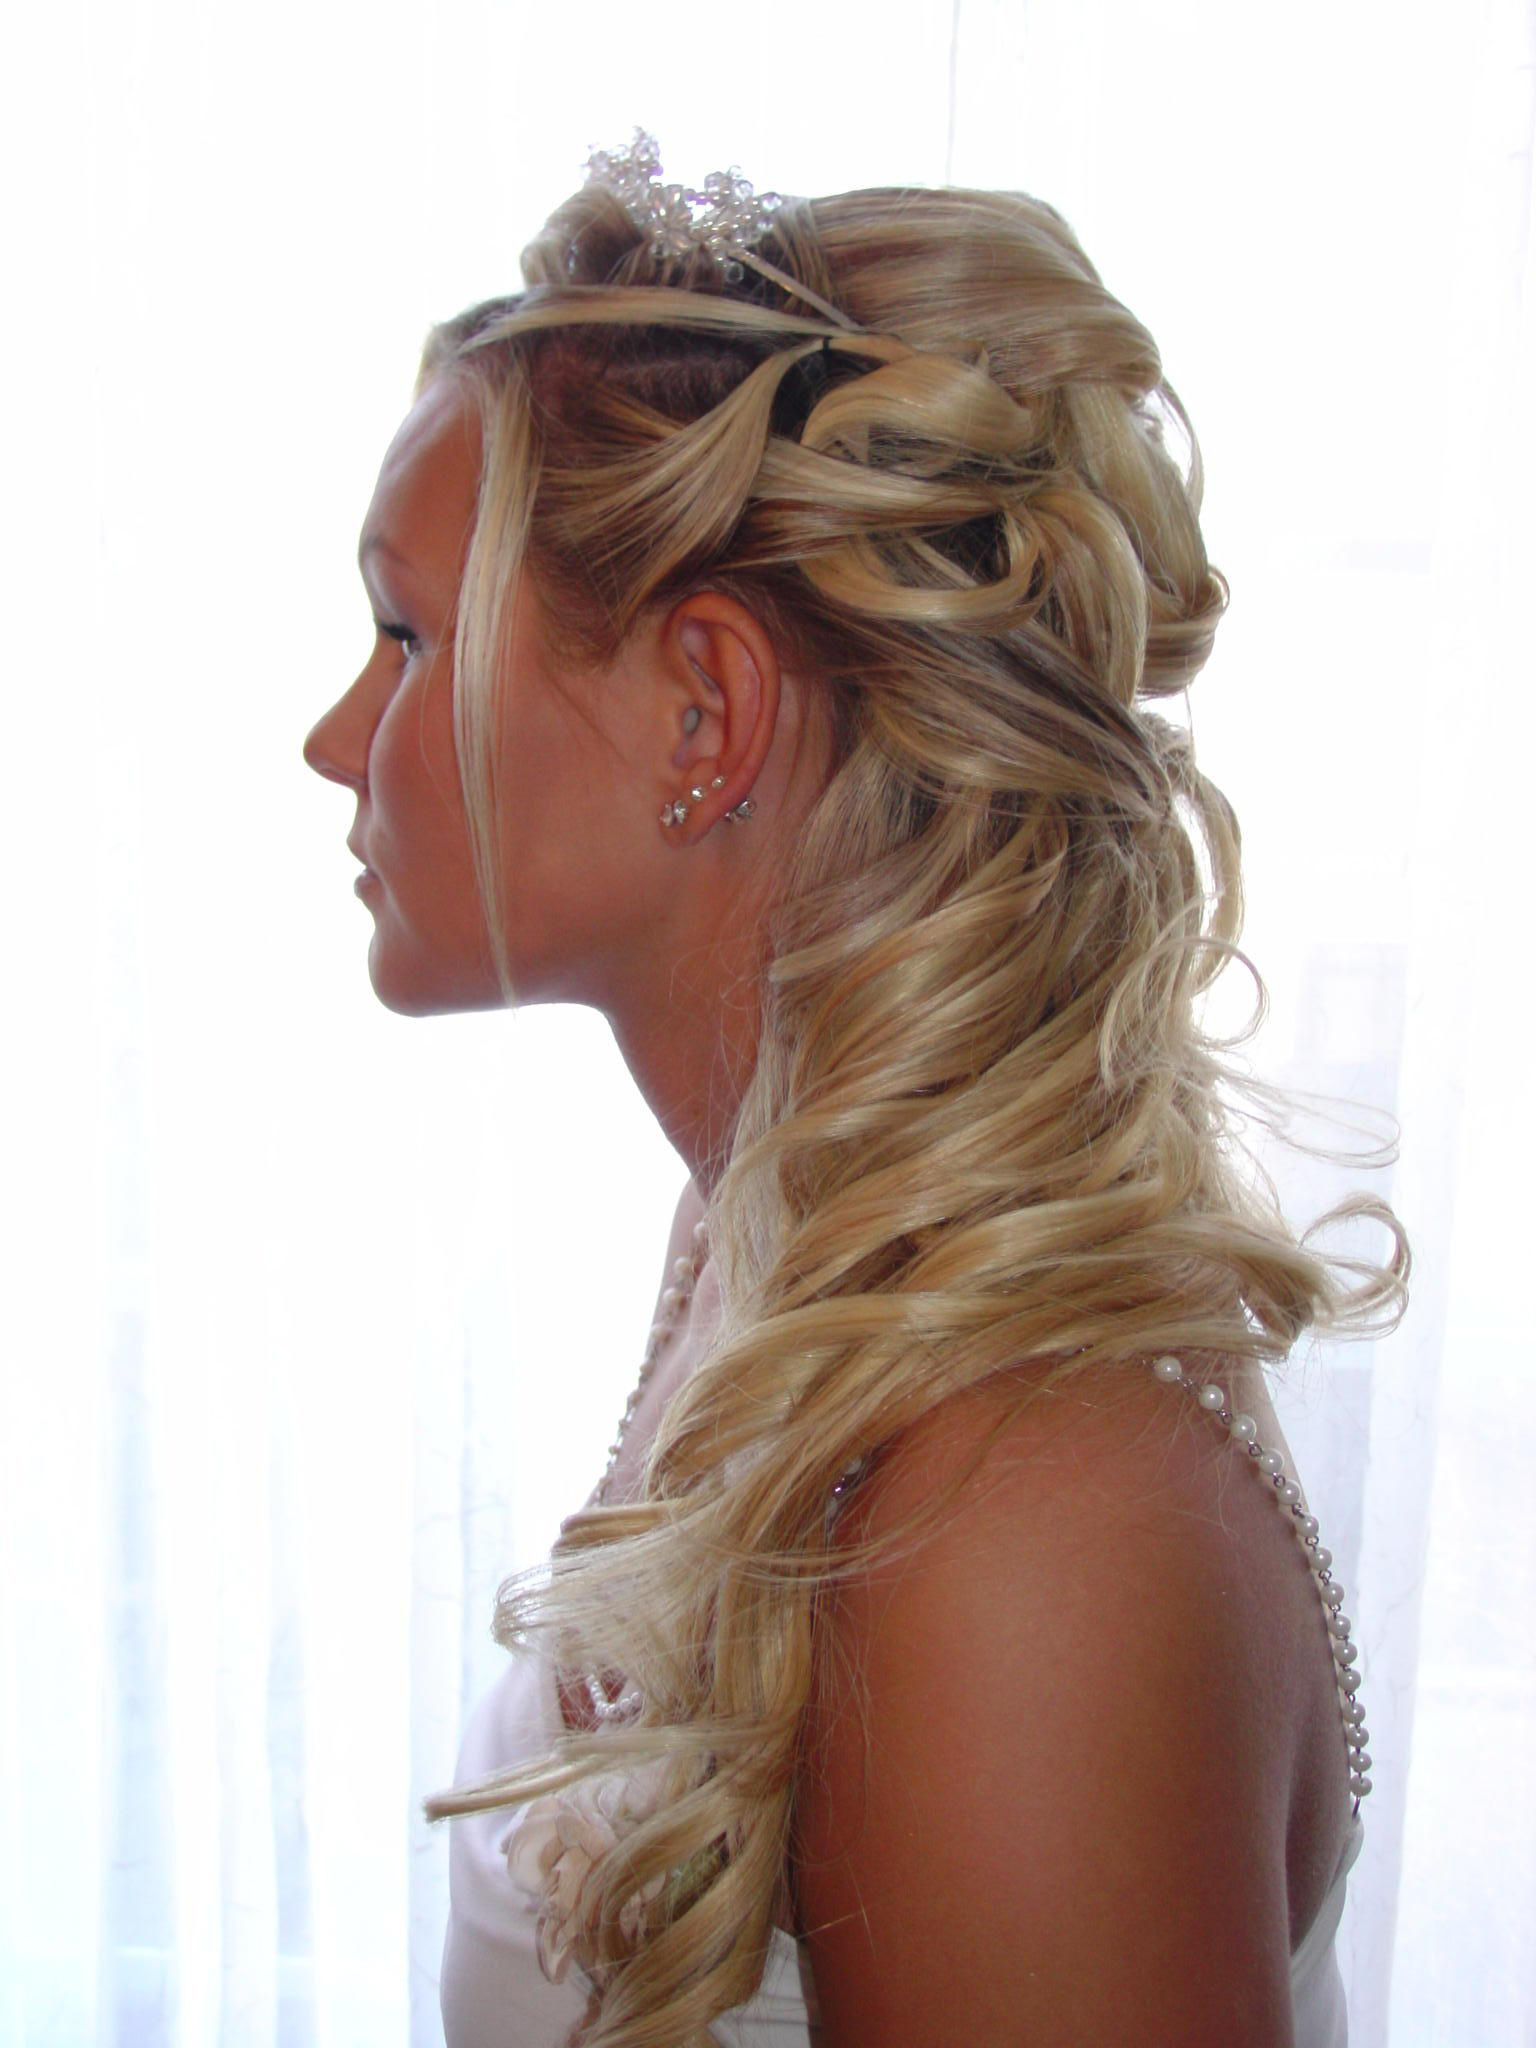 Enjoyable New Jersey Bridal Specialists On Location Up Do Styles Bridal Hairstyle Inspiration Daily Dogsangcom